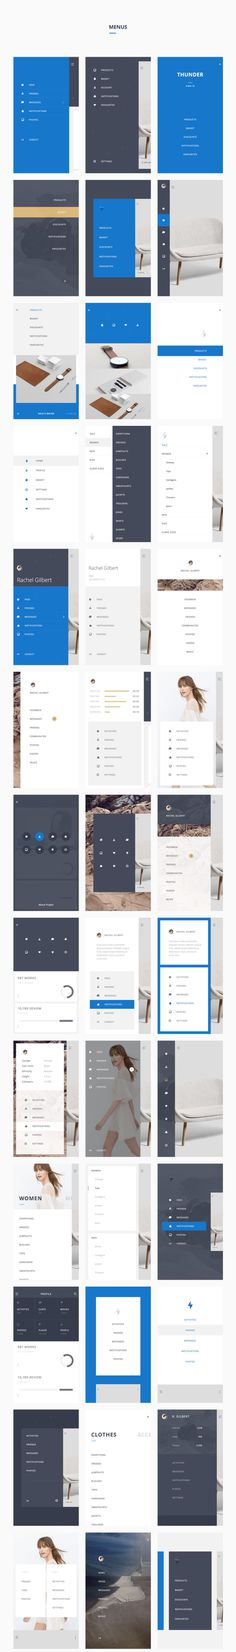 Thunder #UI Kit